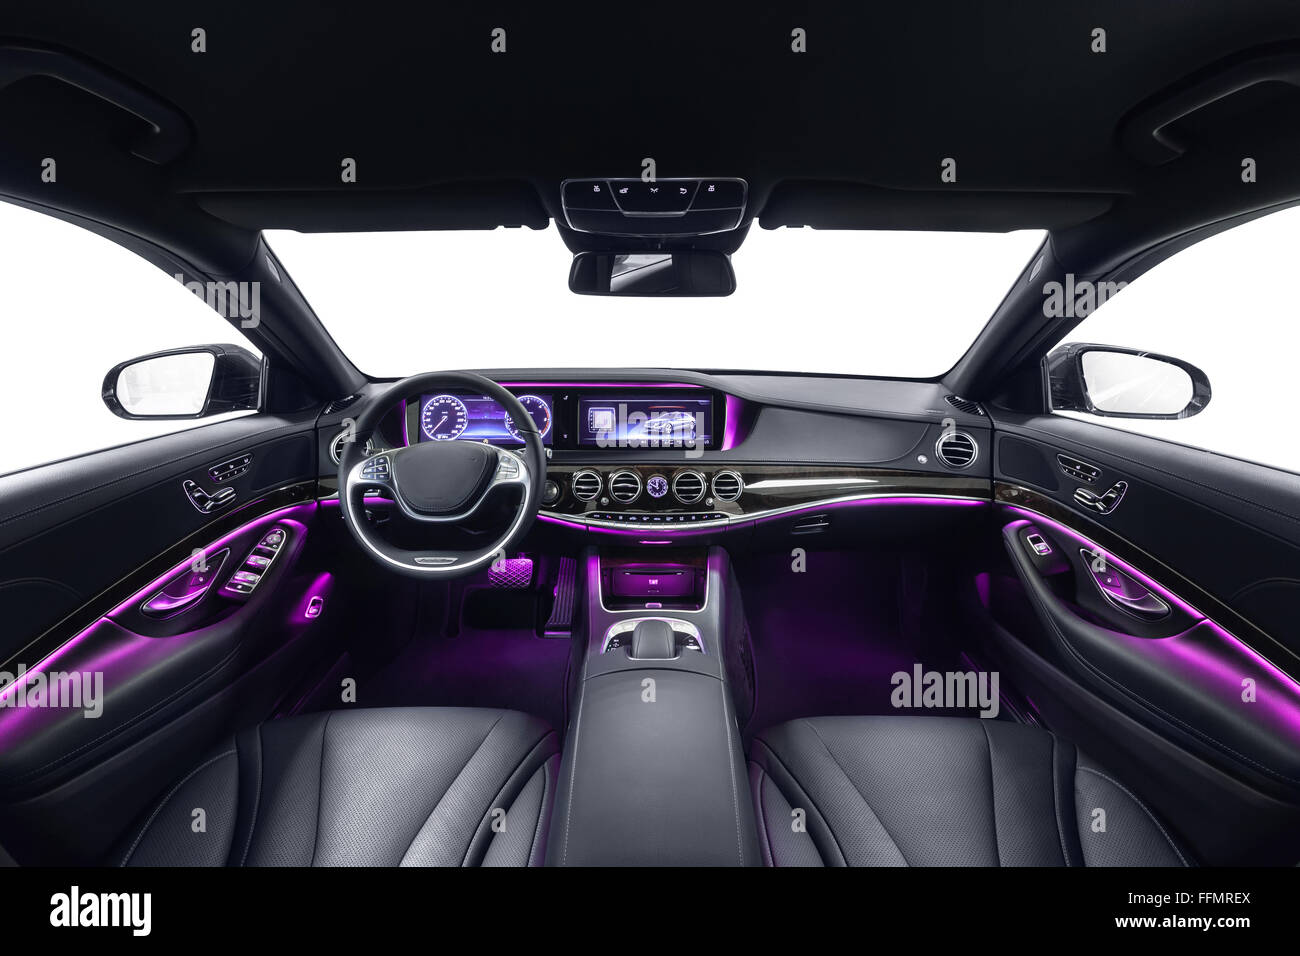 car interior luxury black seats with violet ambient light stock photo royalty free image. Black Bedroom Furniture Sets. Home Design Ideas